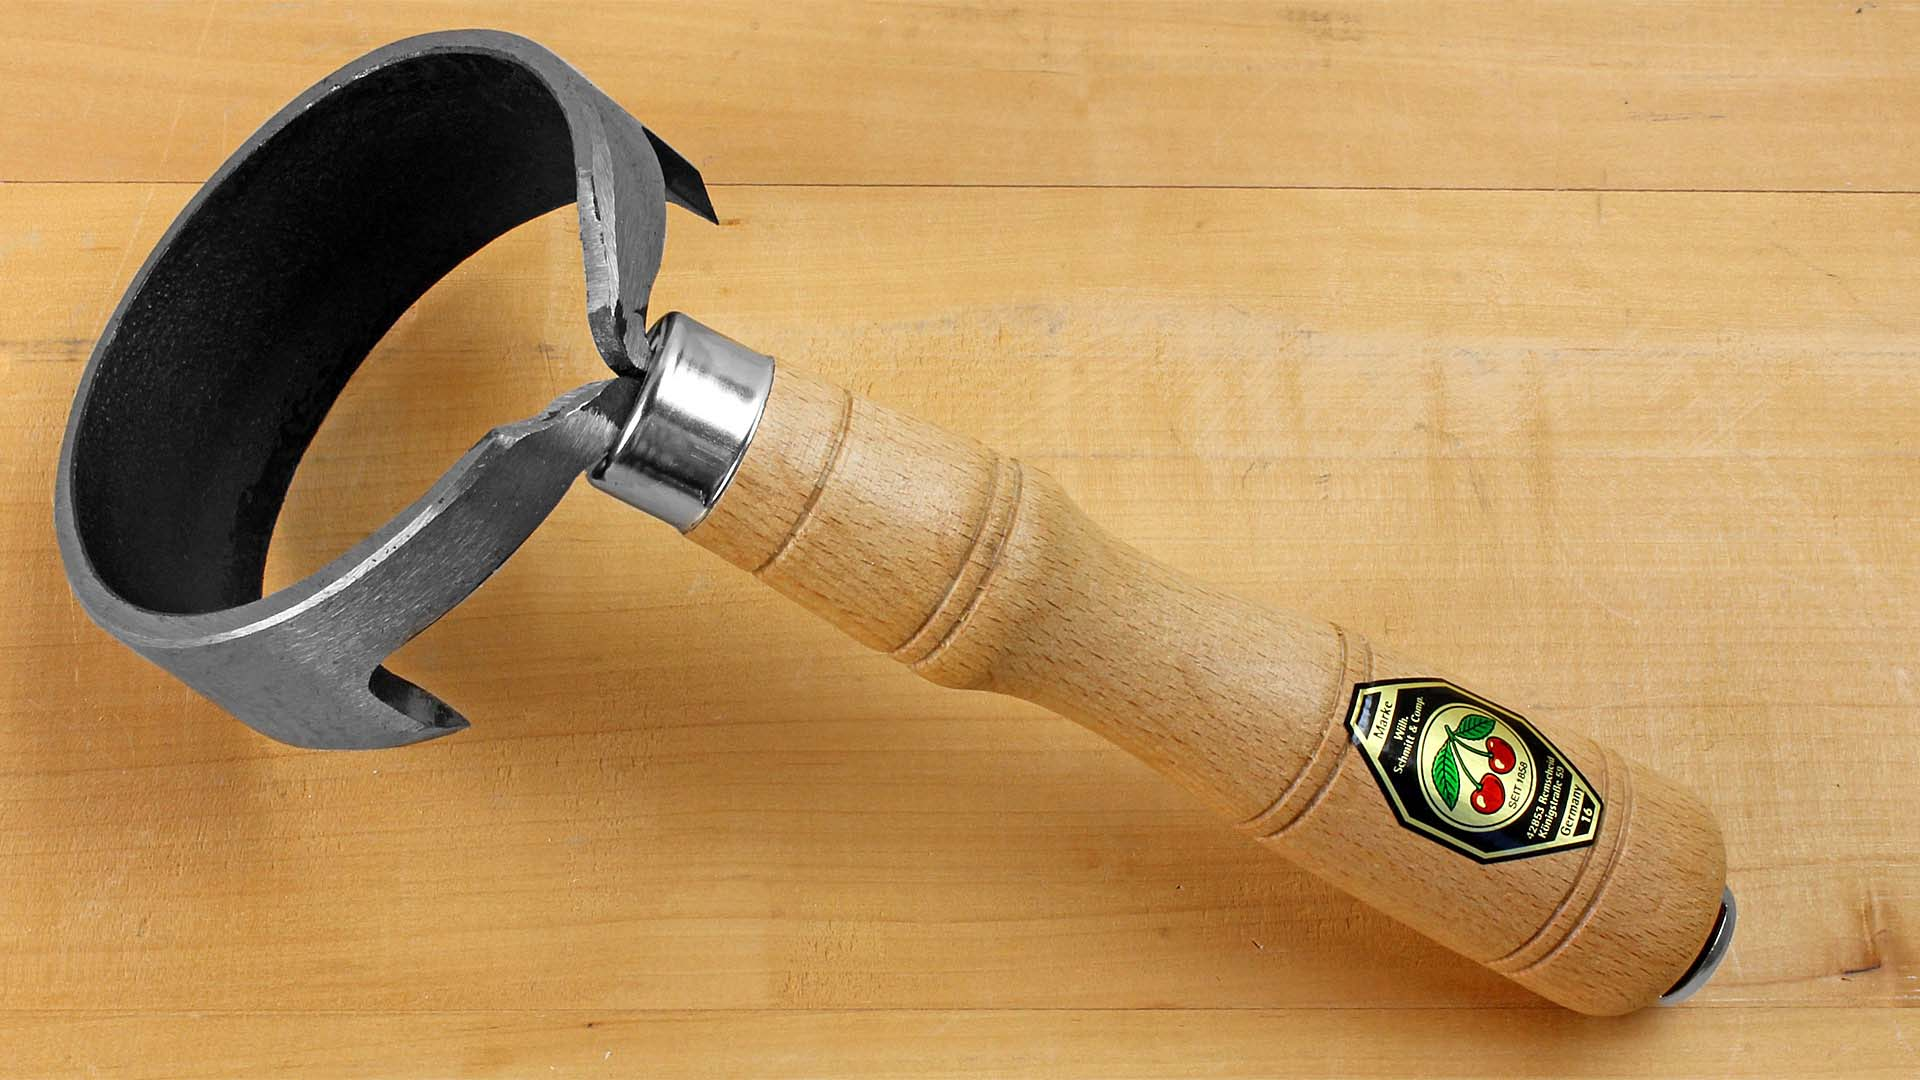 Barrel Draw Knife closed